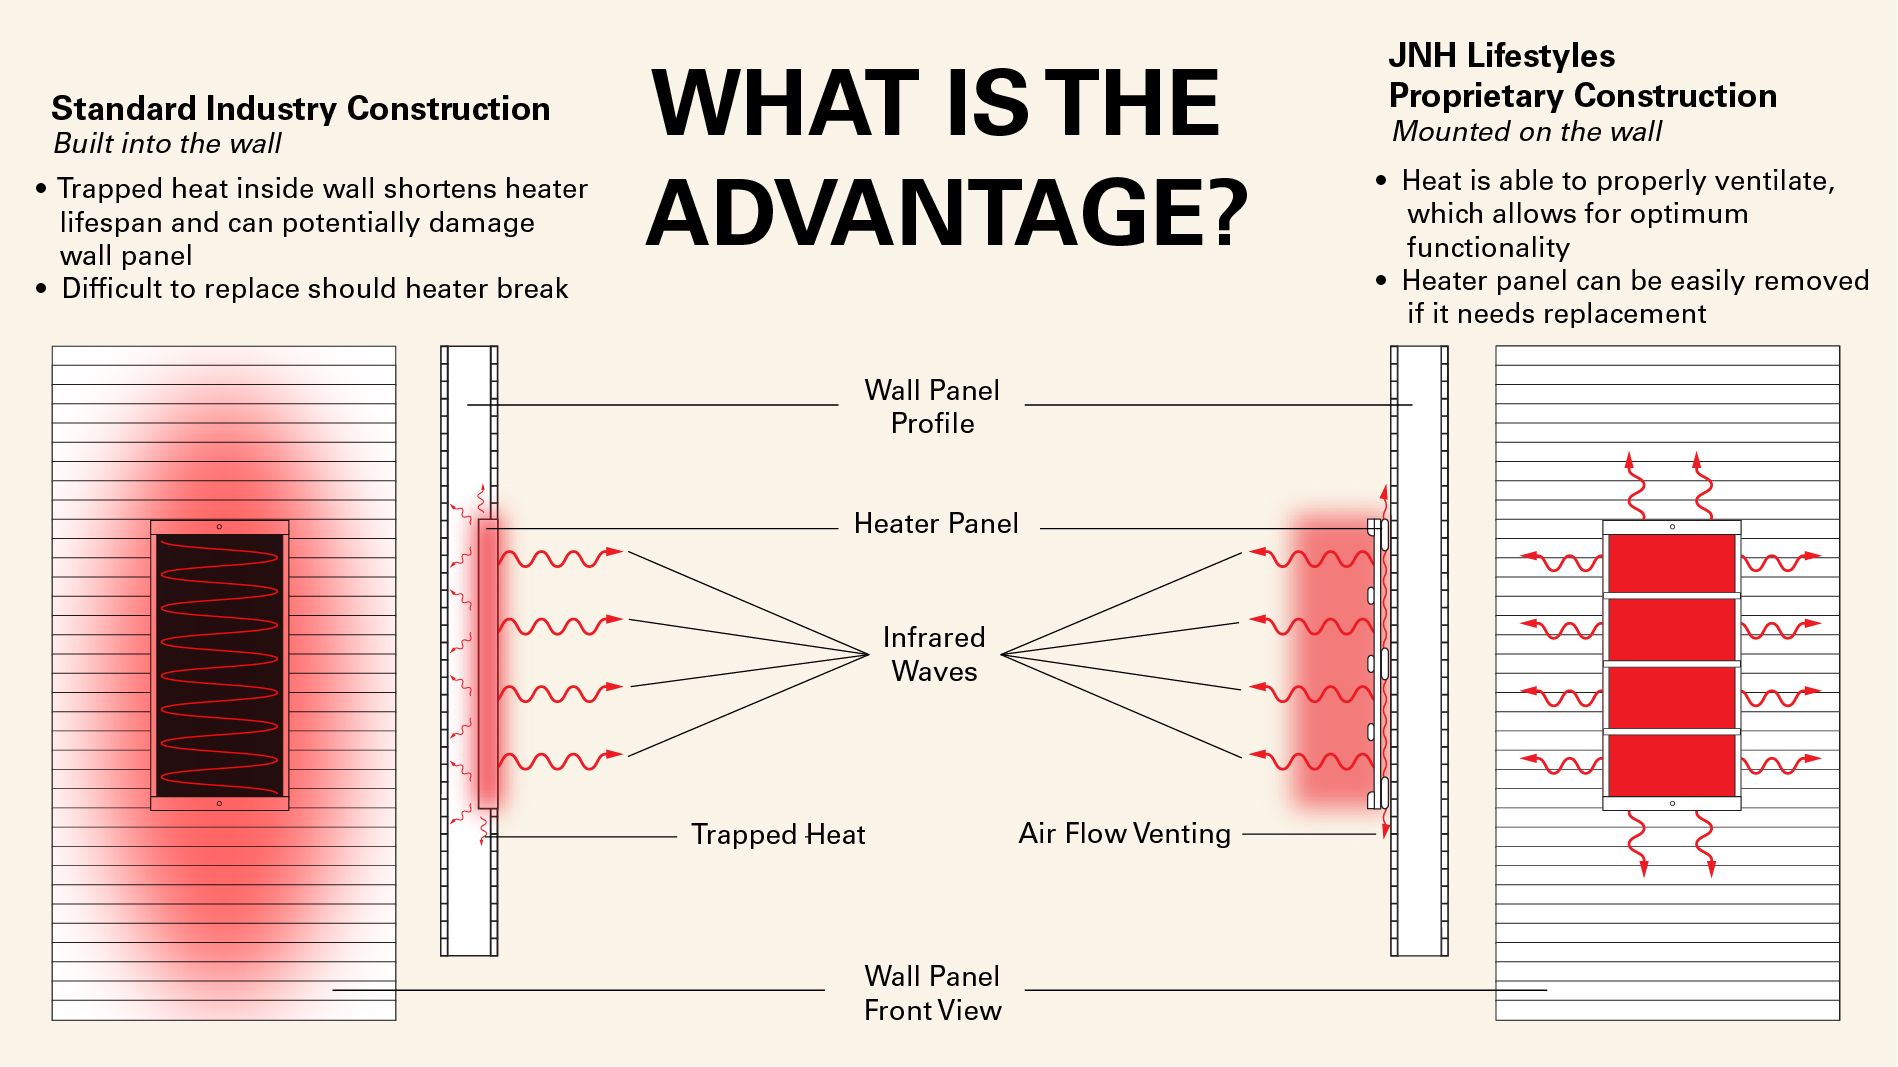 jnh-lifestyles-whats-the-advantage-heater-panels-1-.jpg